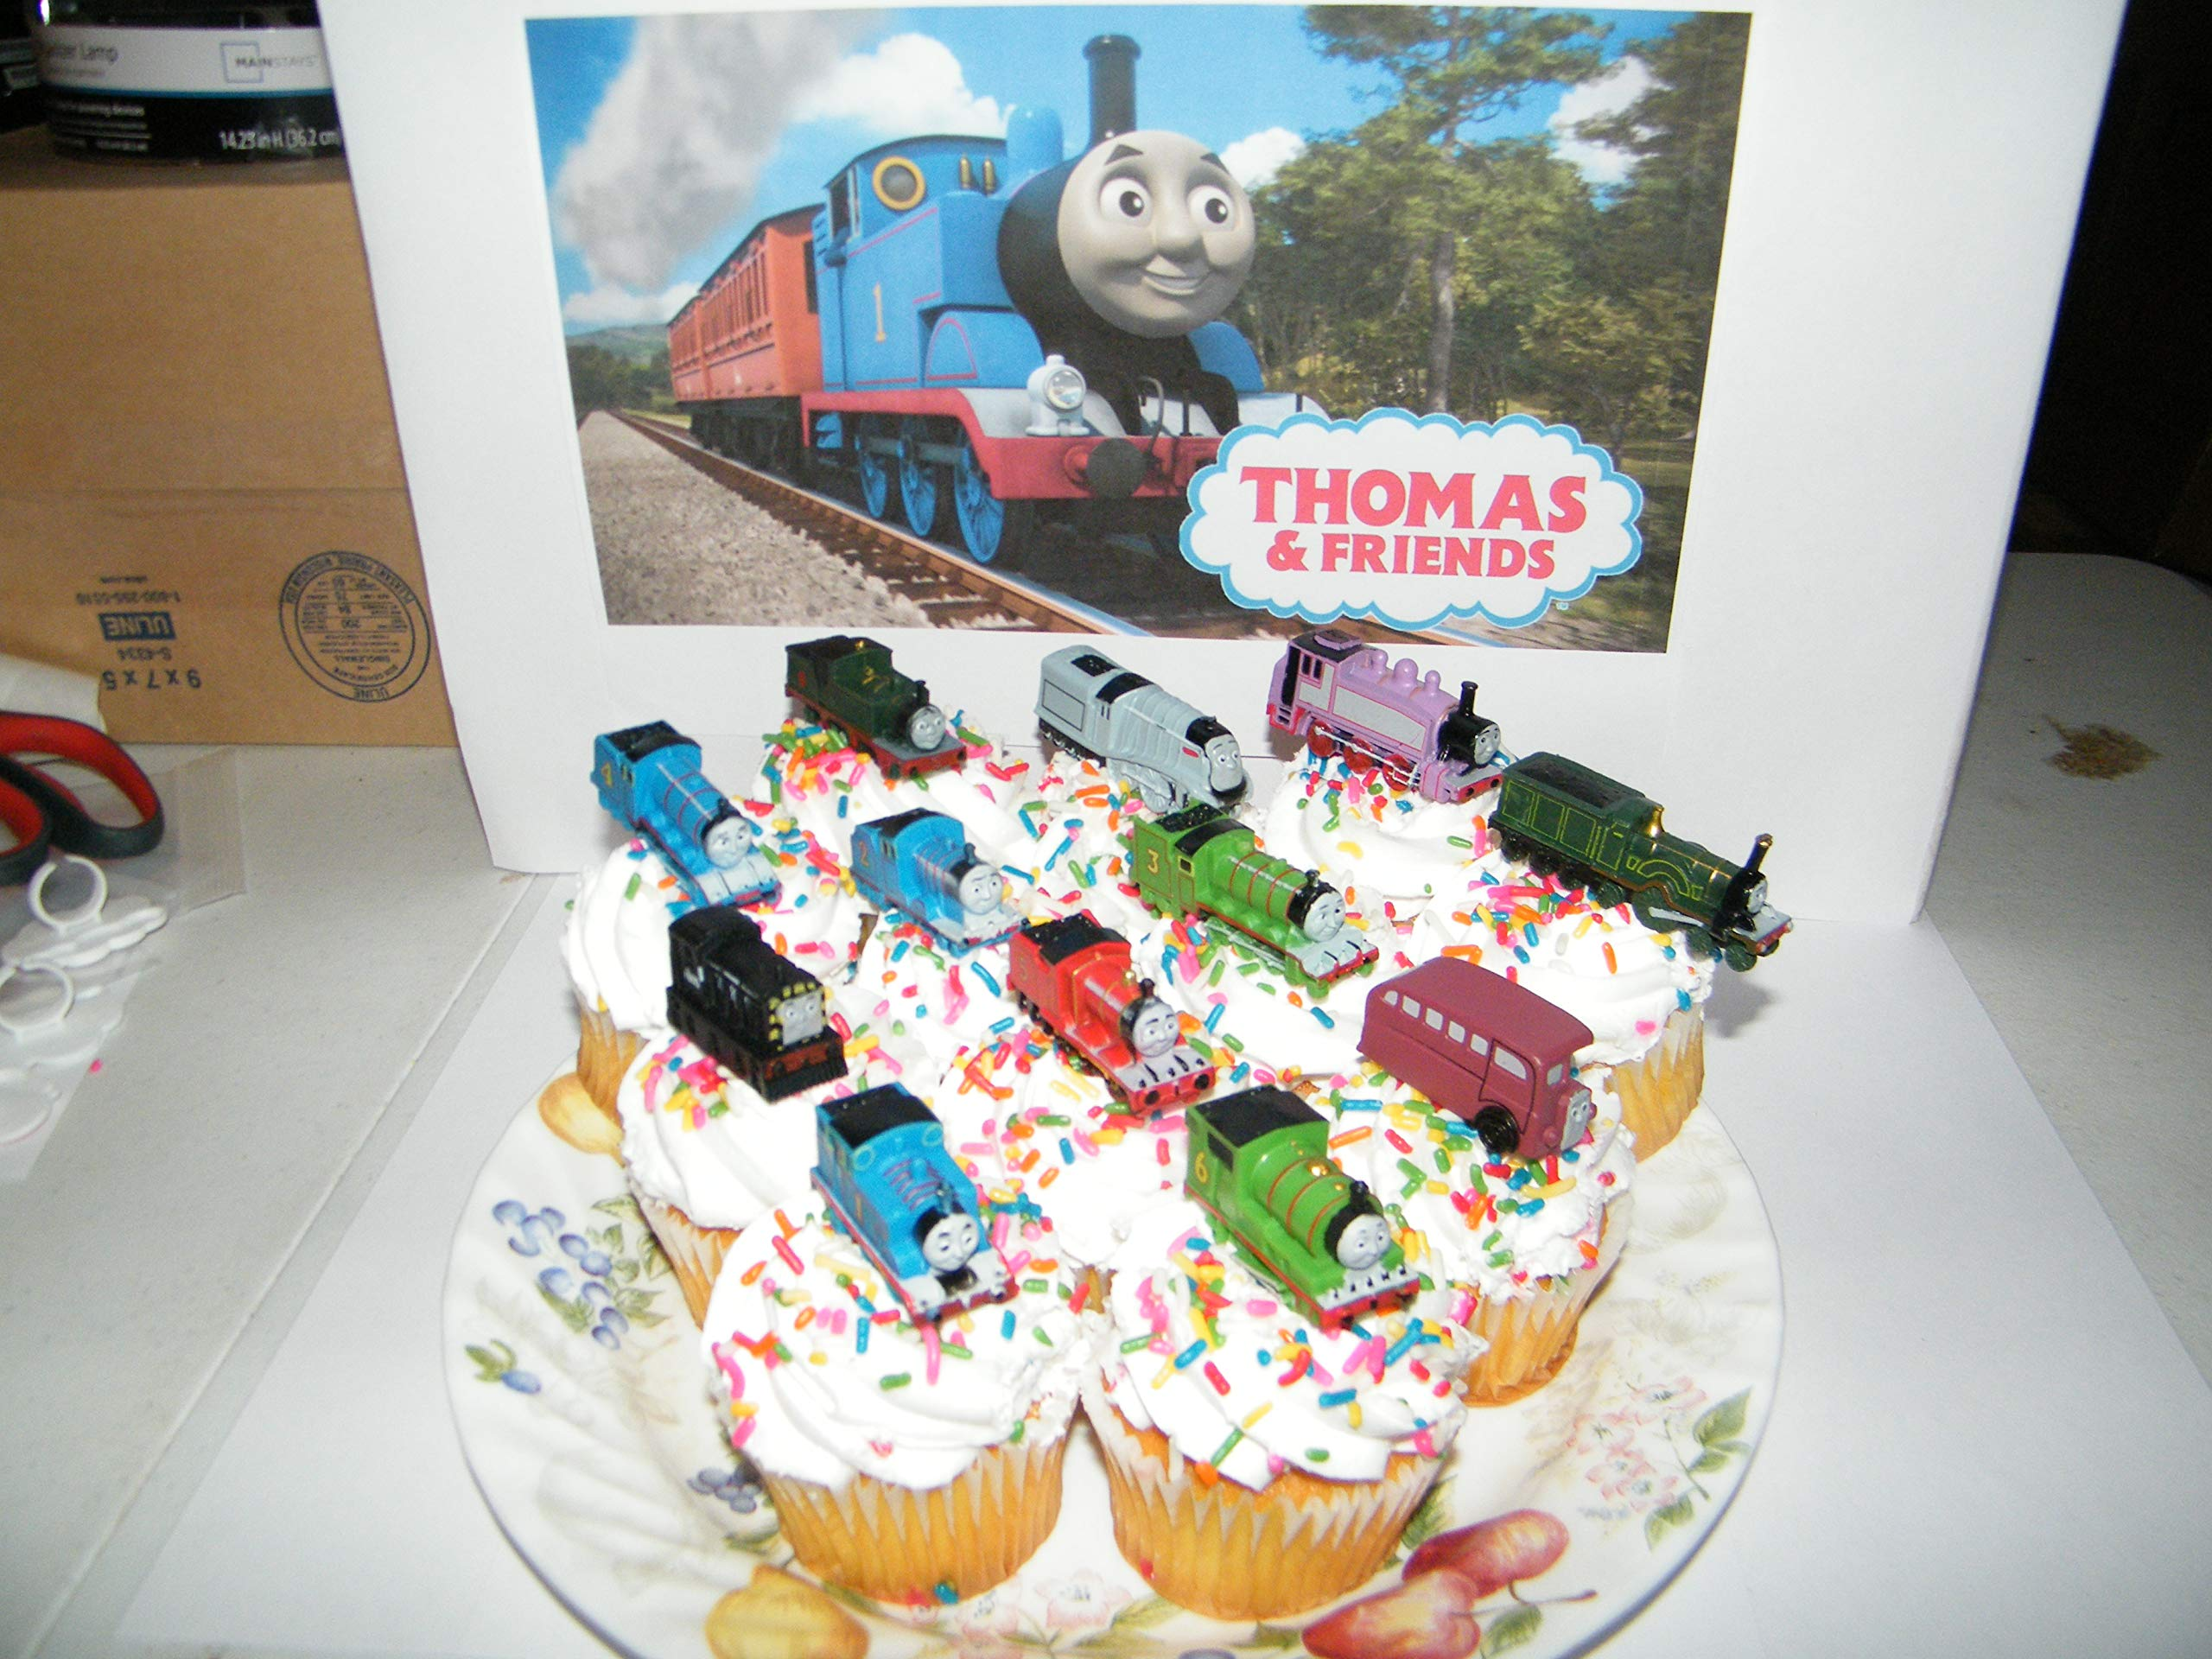 Thomas the Tank Engine Deluxe Cake Toppers Cupcake Decorations Set of 14 with 12 Figures and 2 Train ToyRings featuring Thomas, Rosie, Bus Bertie, James and More! by Party Decor